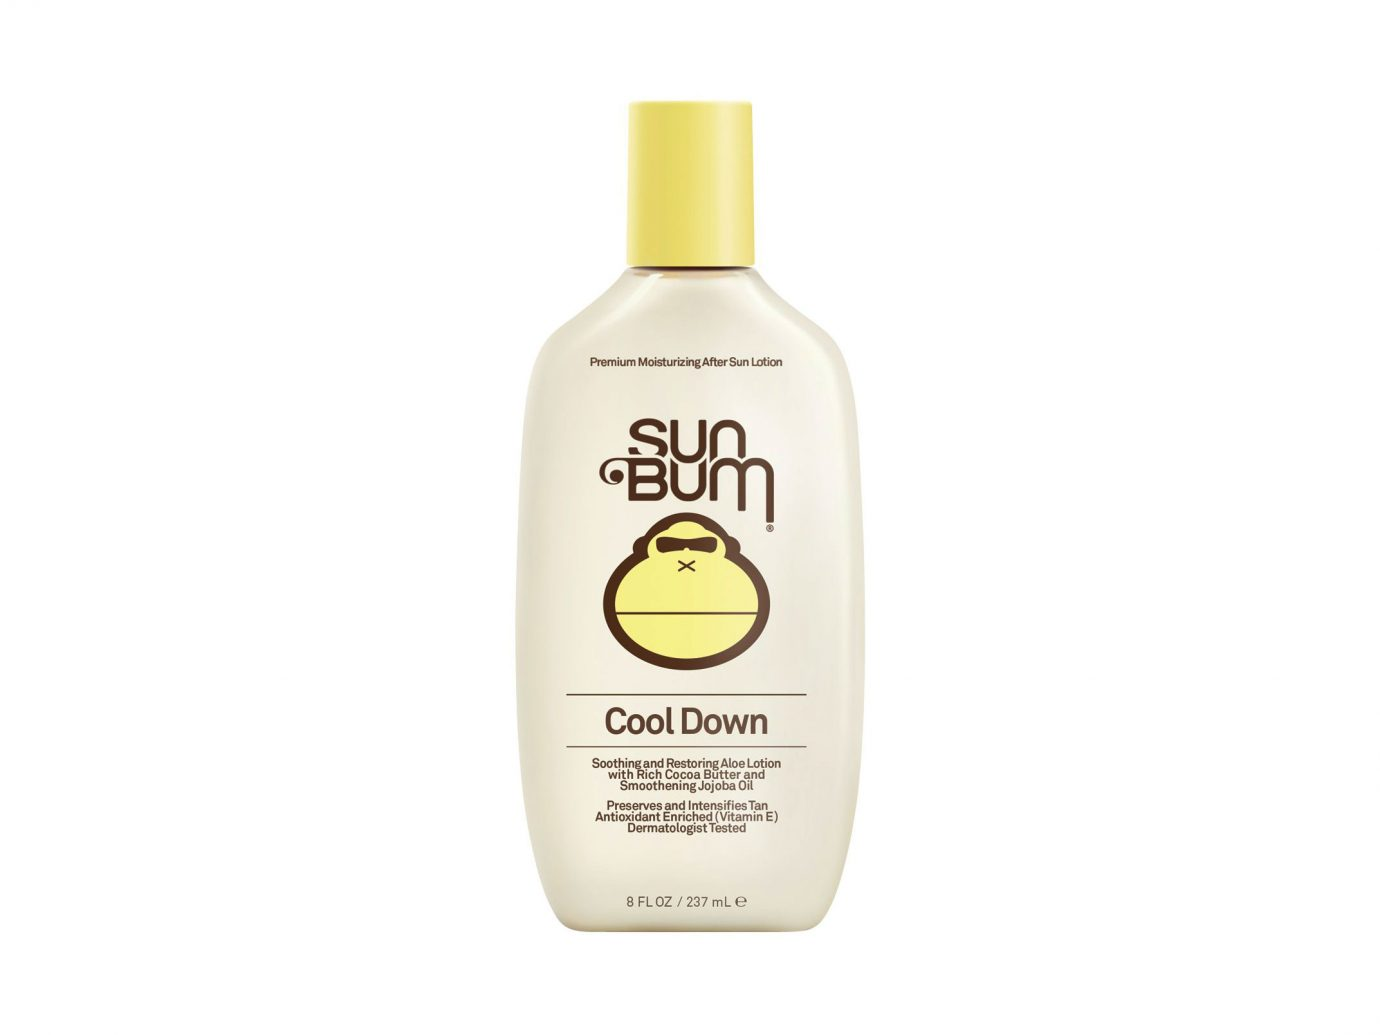 Sun bum Soothing after-sun lotion